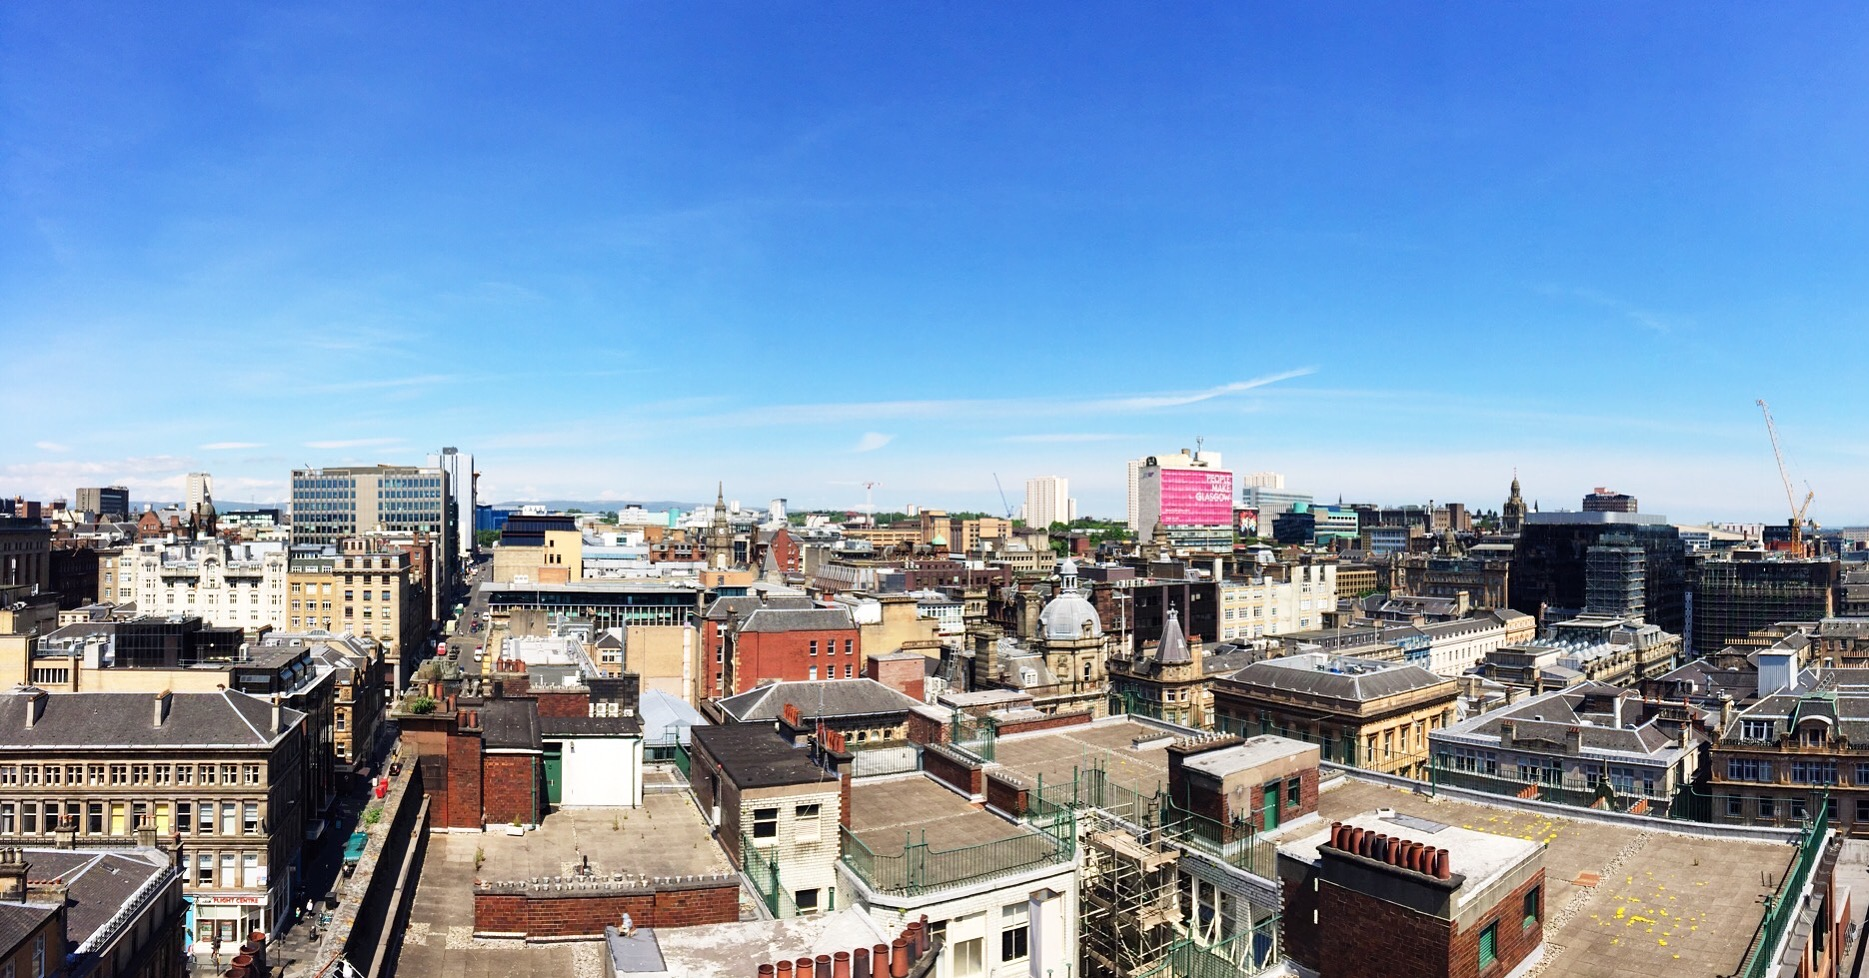 View of Glasgow city centre from The Lighthouse